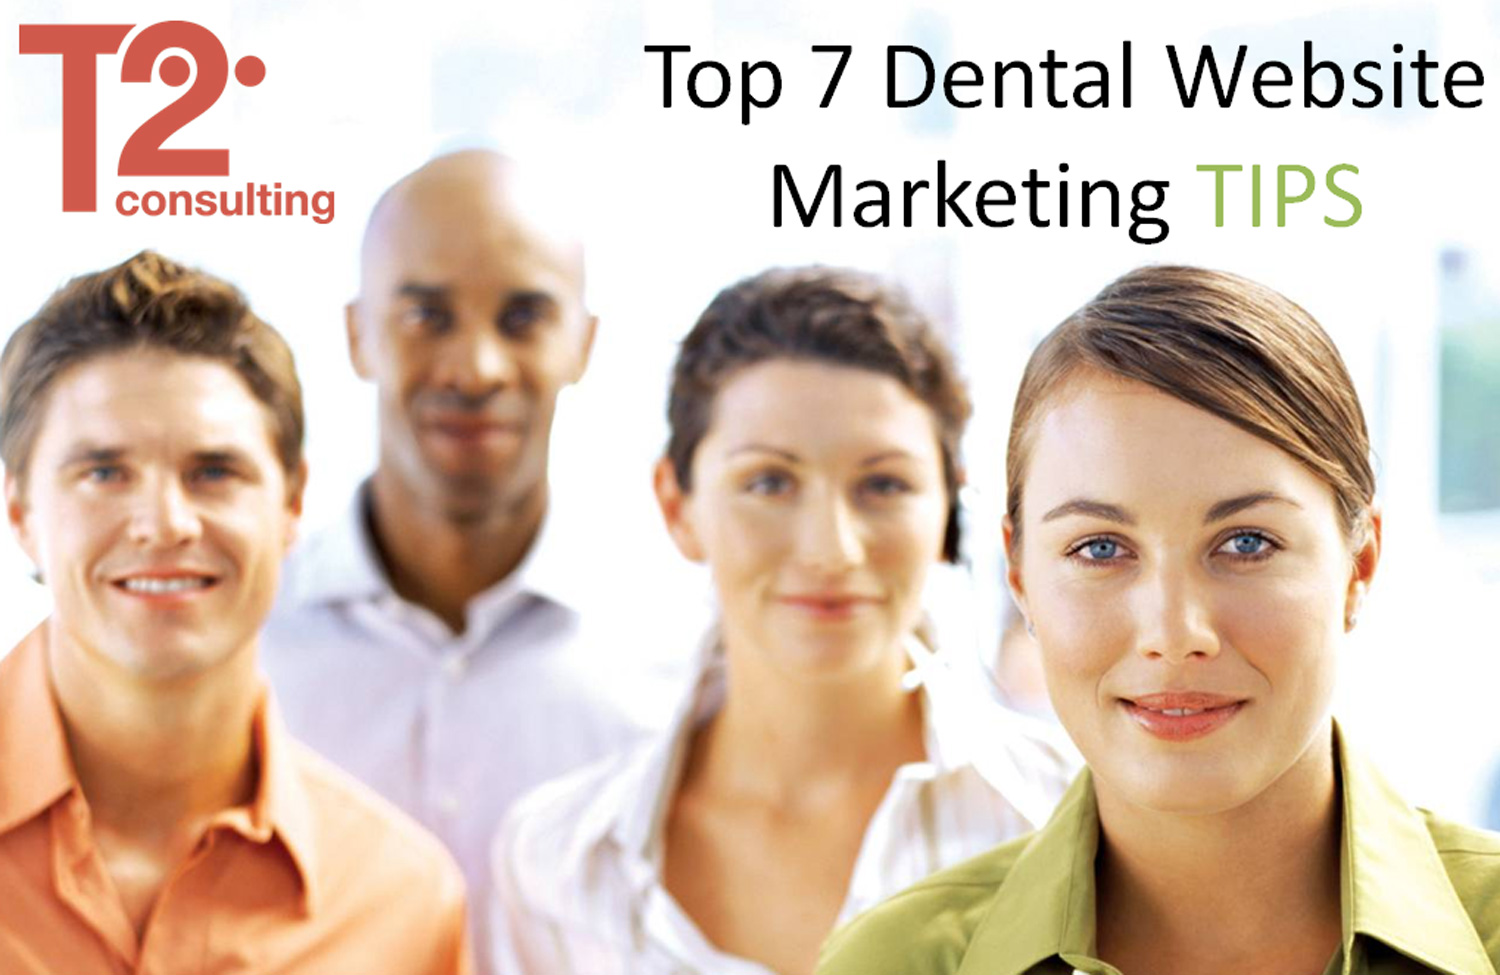 Dental website marketing solutions that work - Healthcare ...